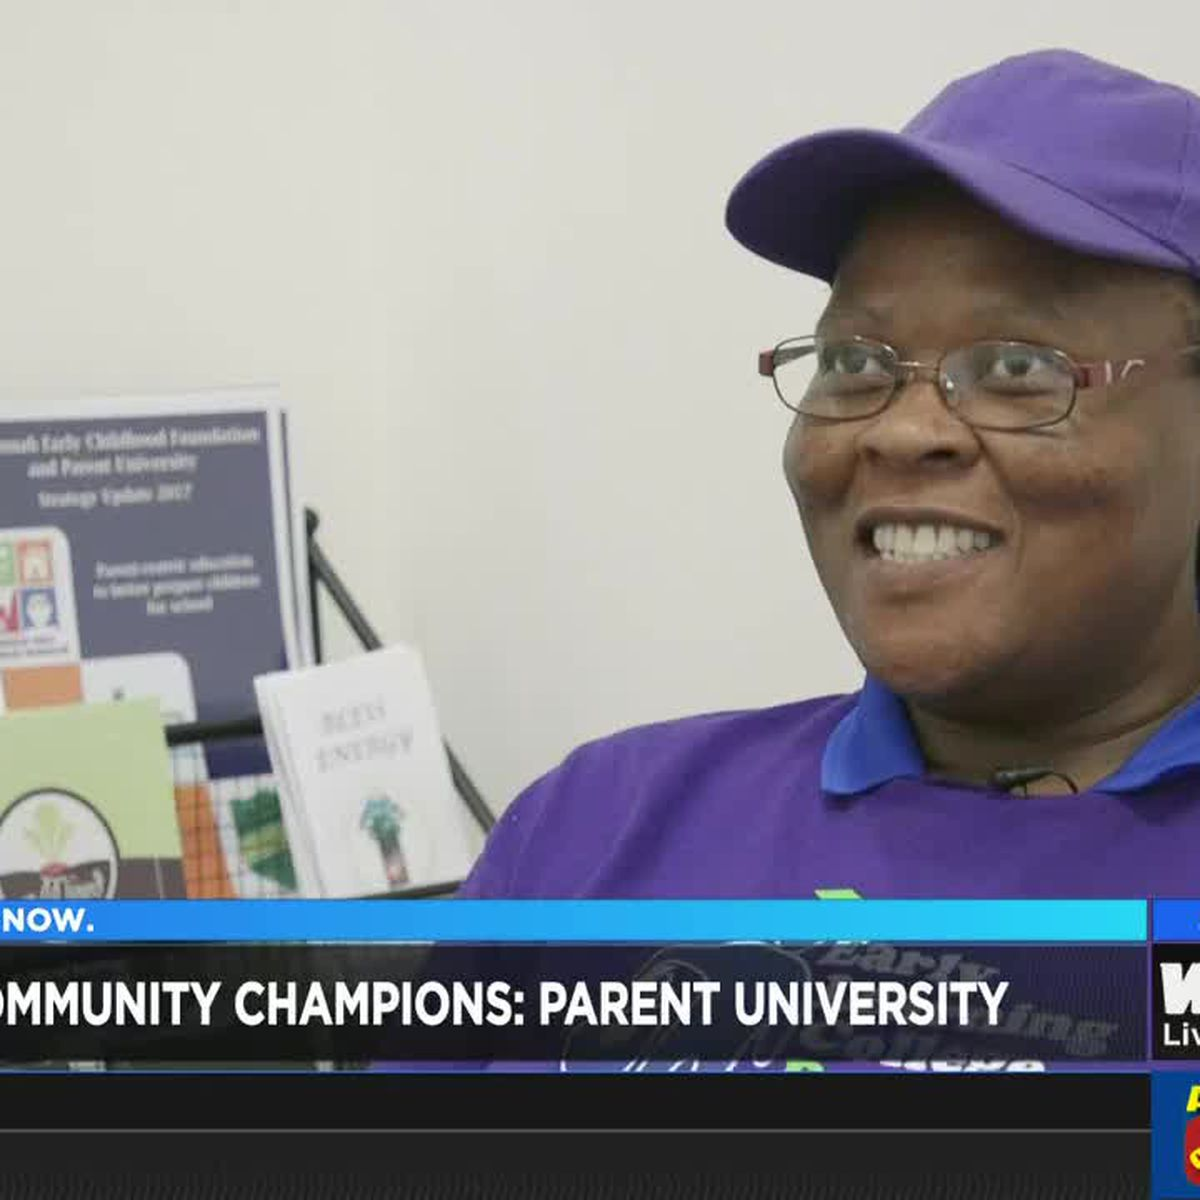 Community Champions: Parent University